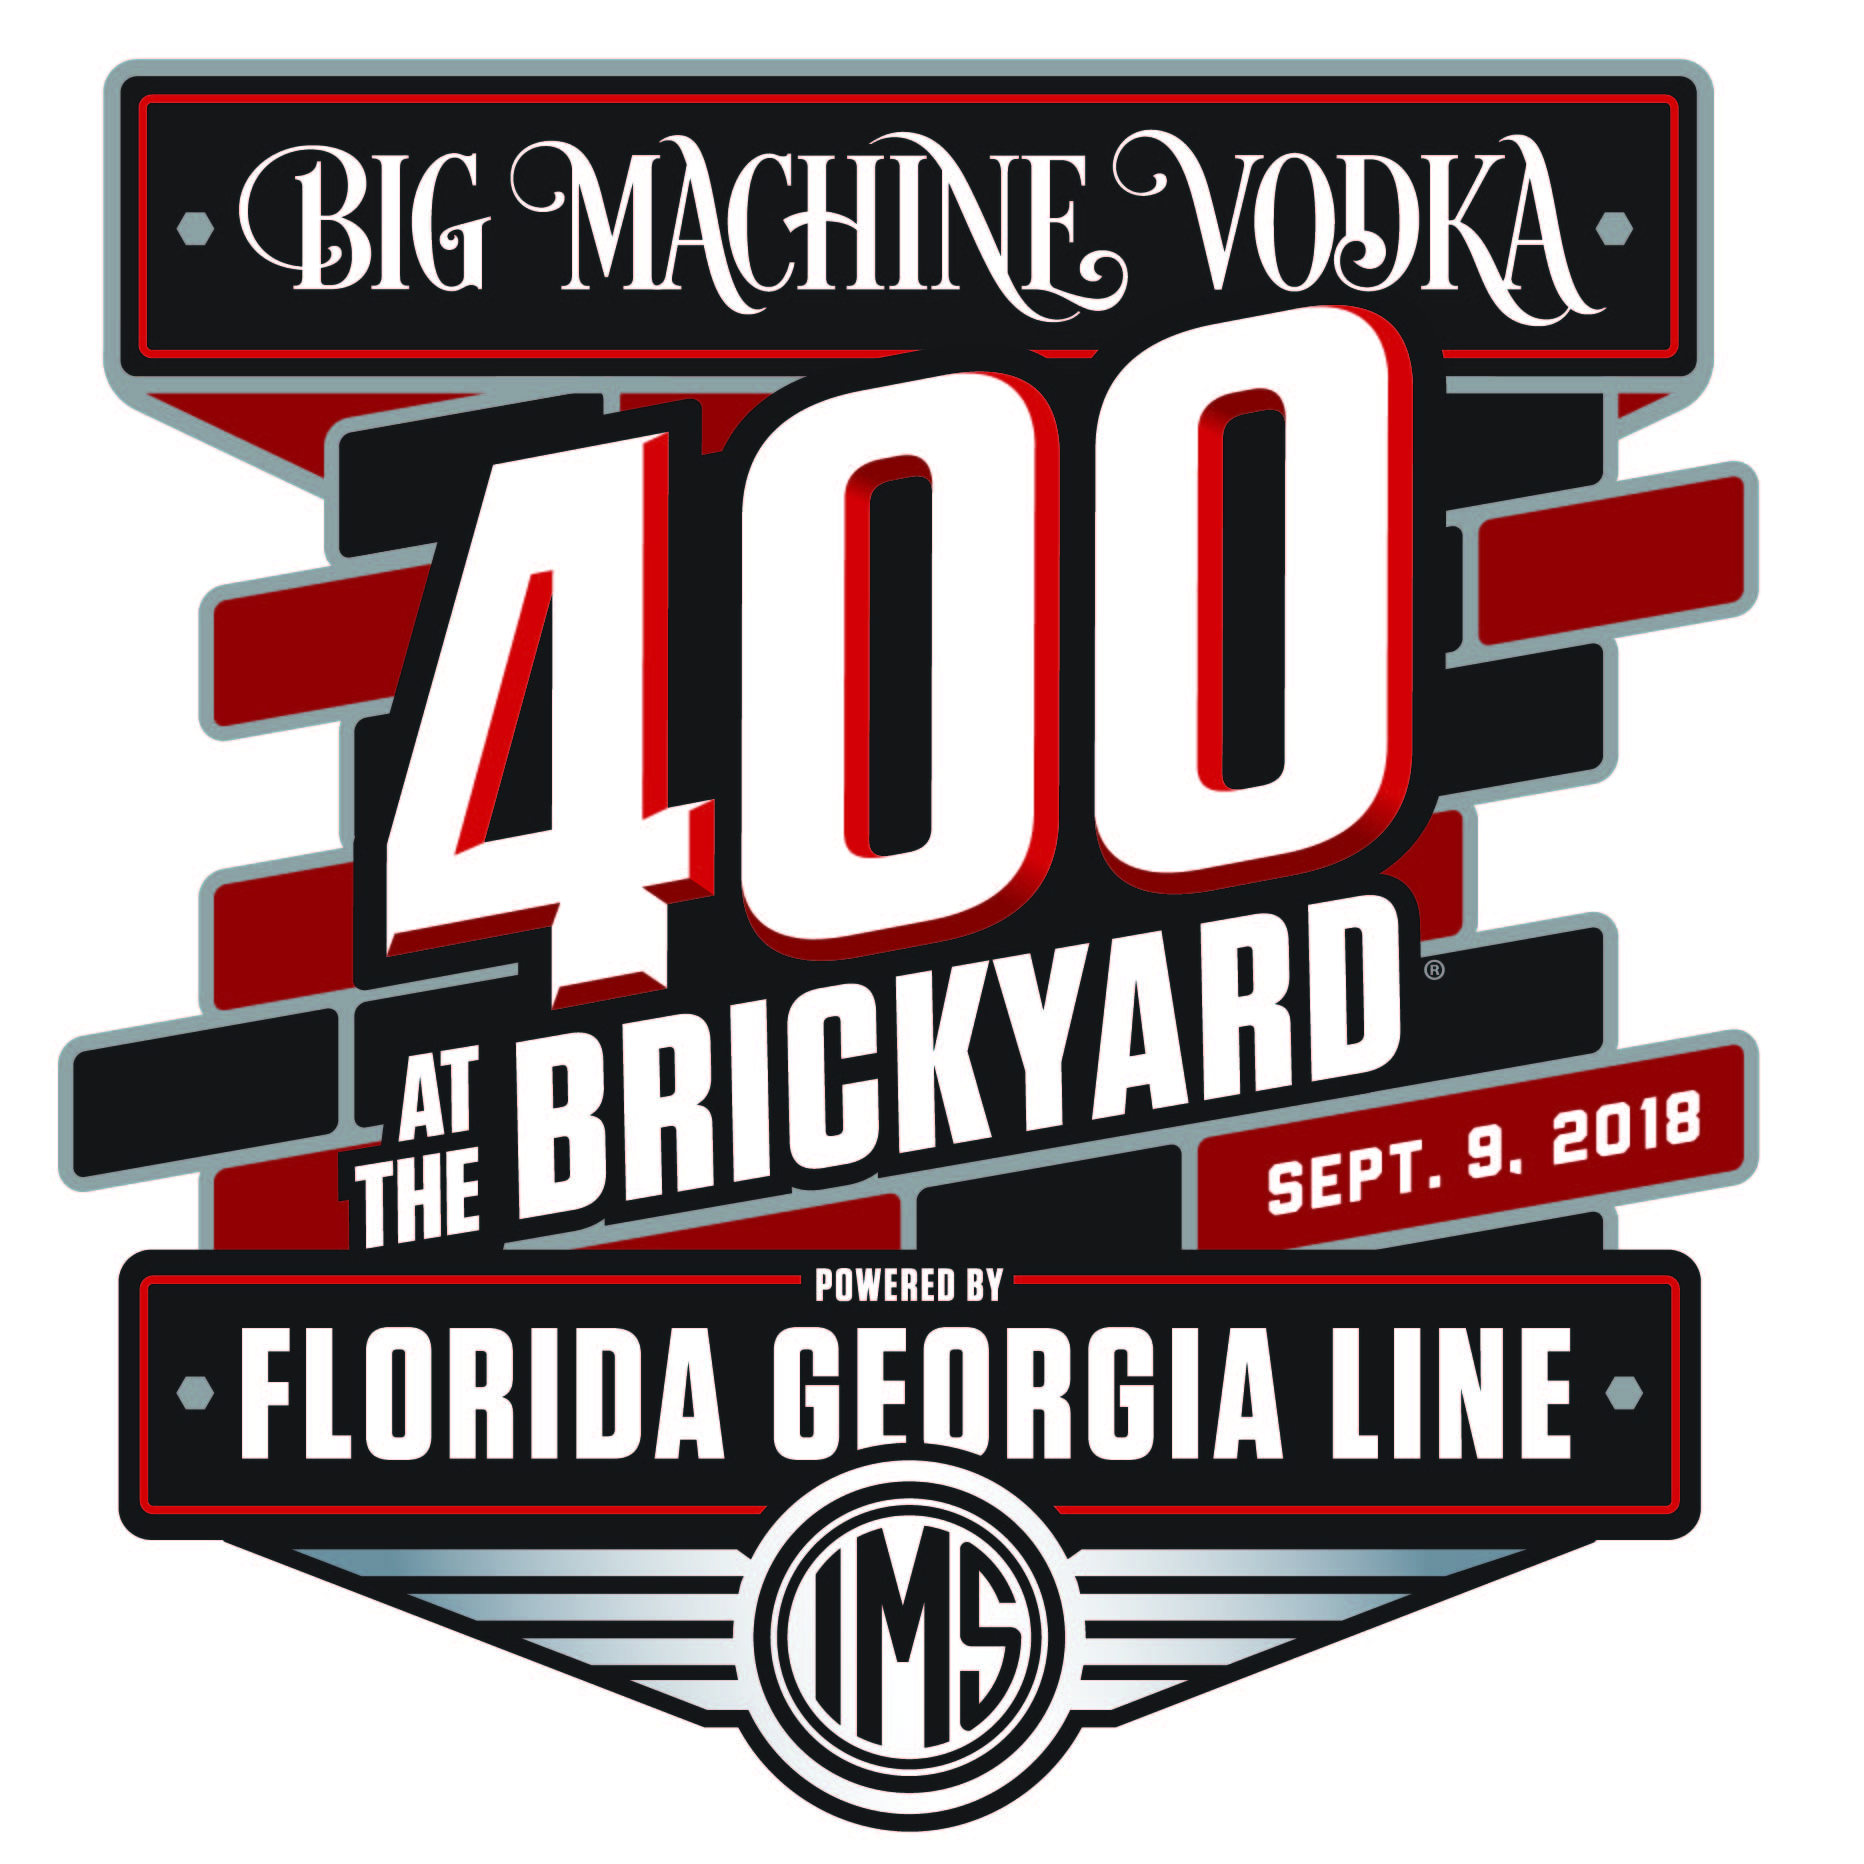 Florida Georgia Line To Headline Fgl Fest During Nascar